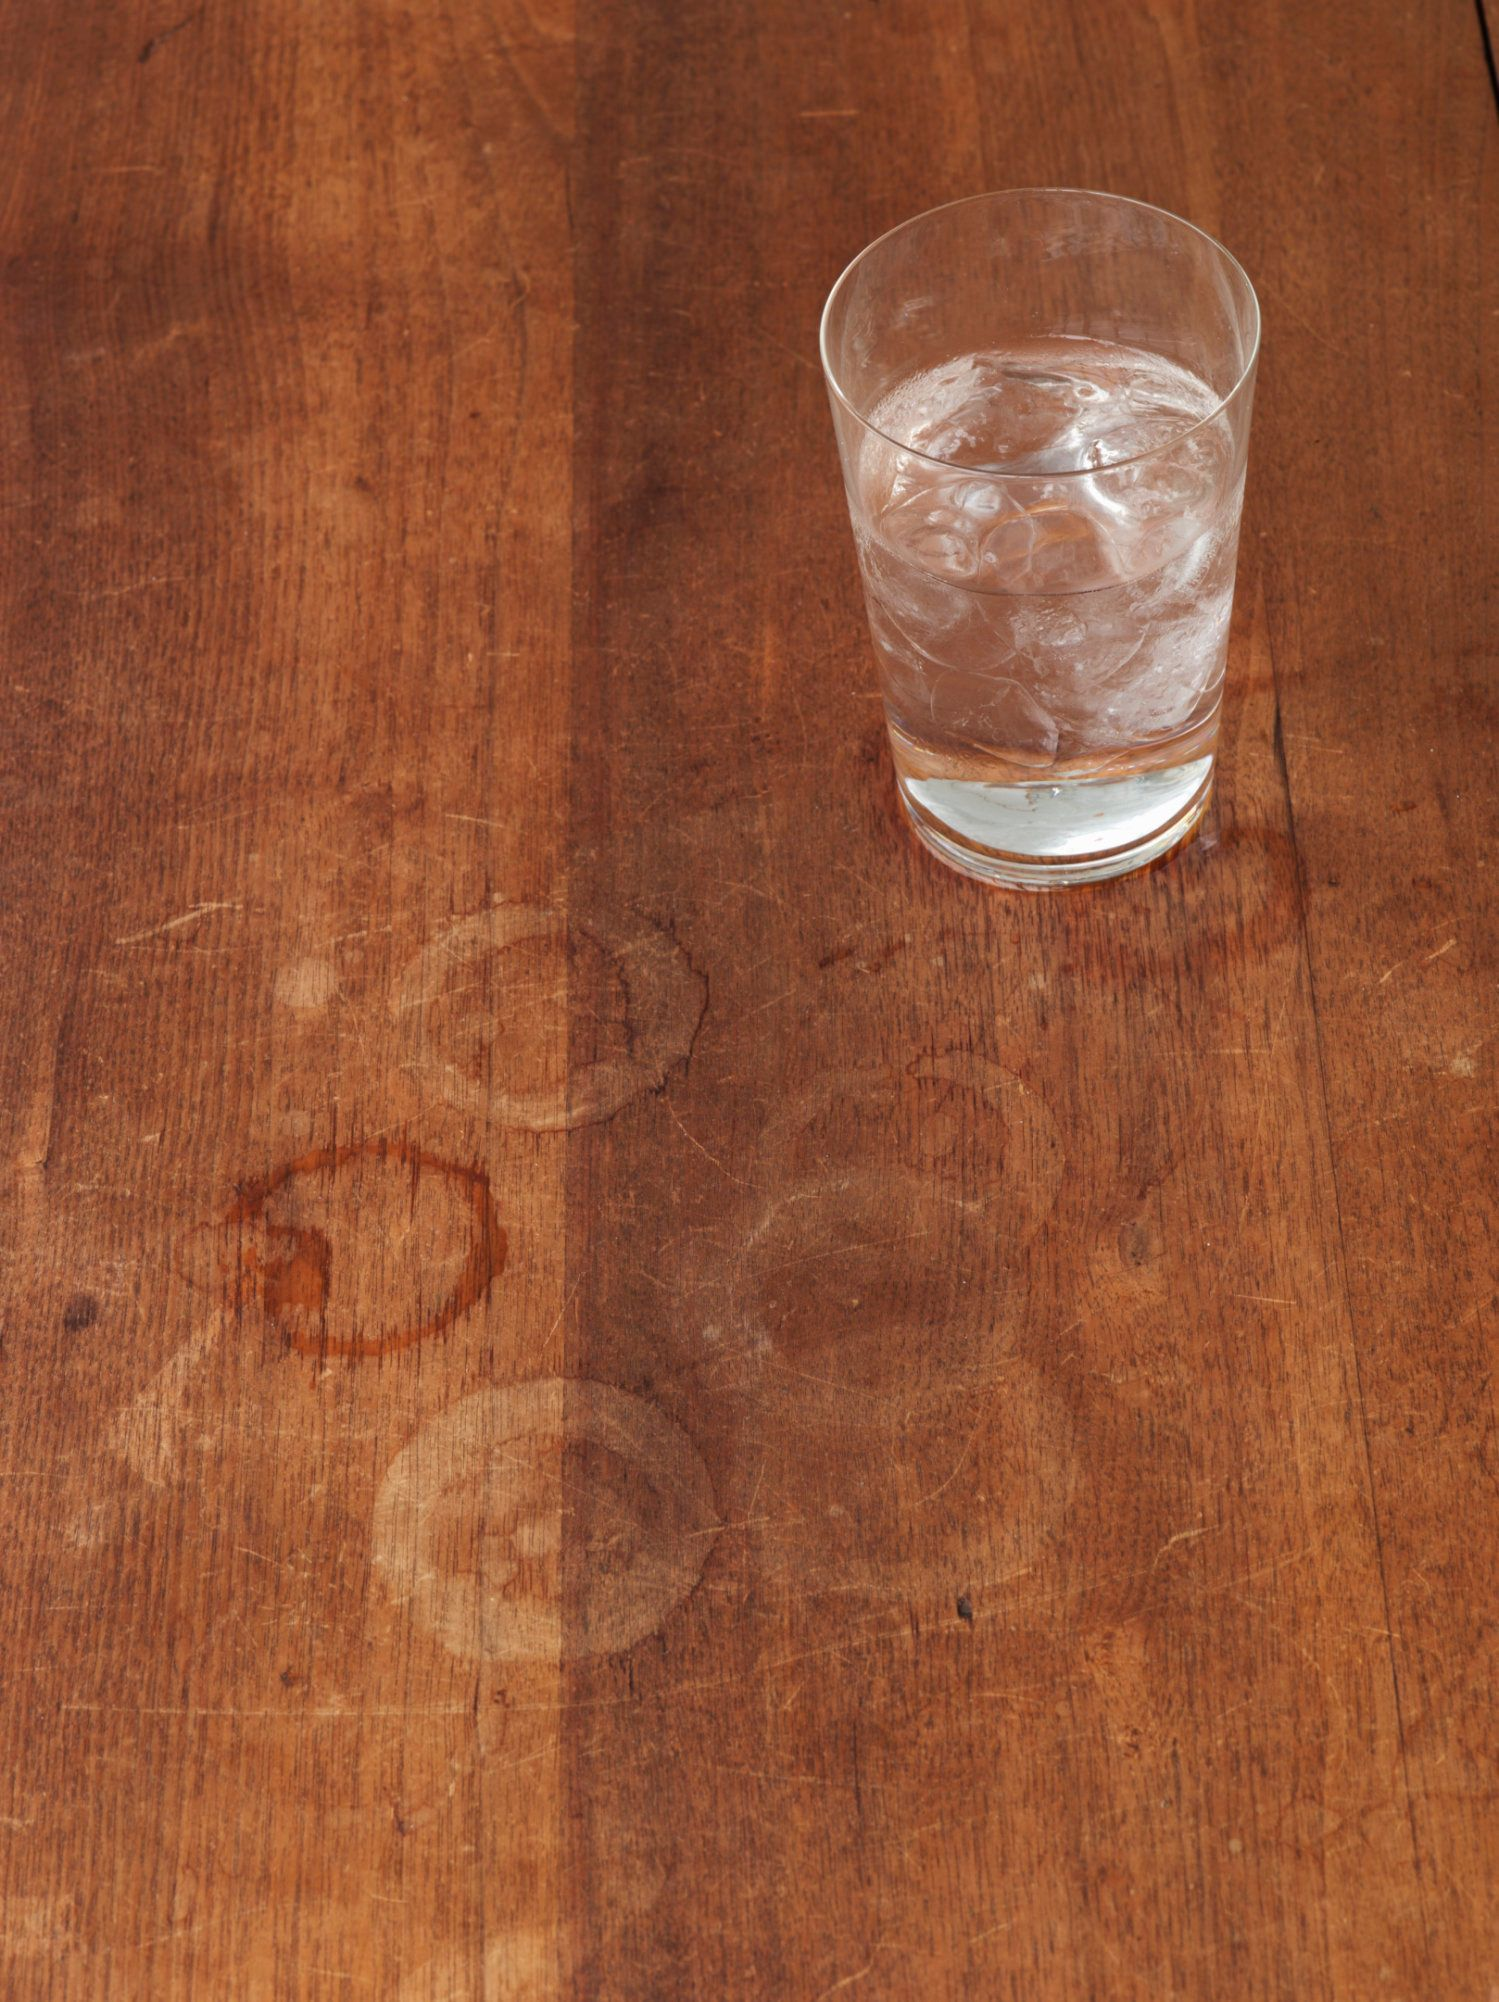 Wood table with glass of water